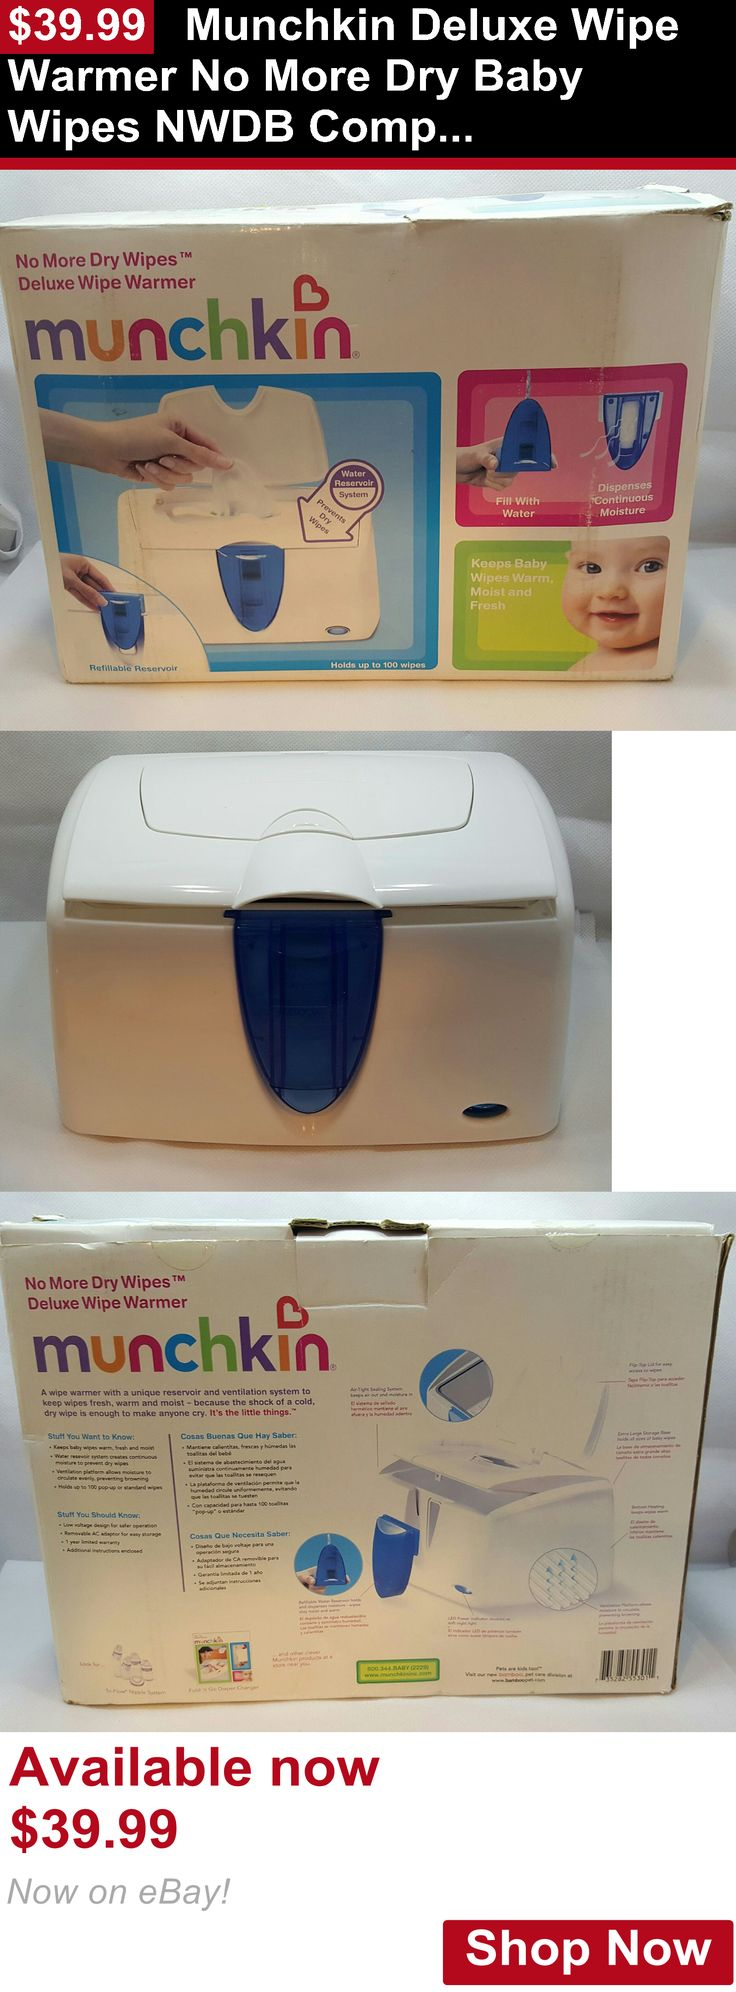 Baby Wipe Warmers: Munchkin Deluxe Wipe Warmer No More Dry Baby Wipes Nwdb Complete W/ Ac Adapter BUY IT NOW ONLY: $39.99